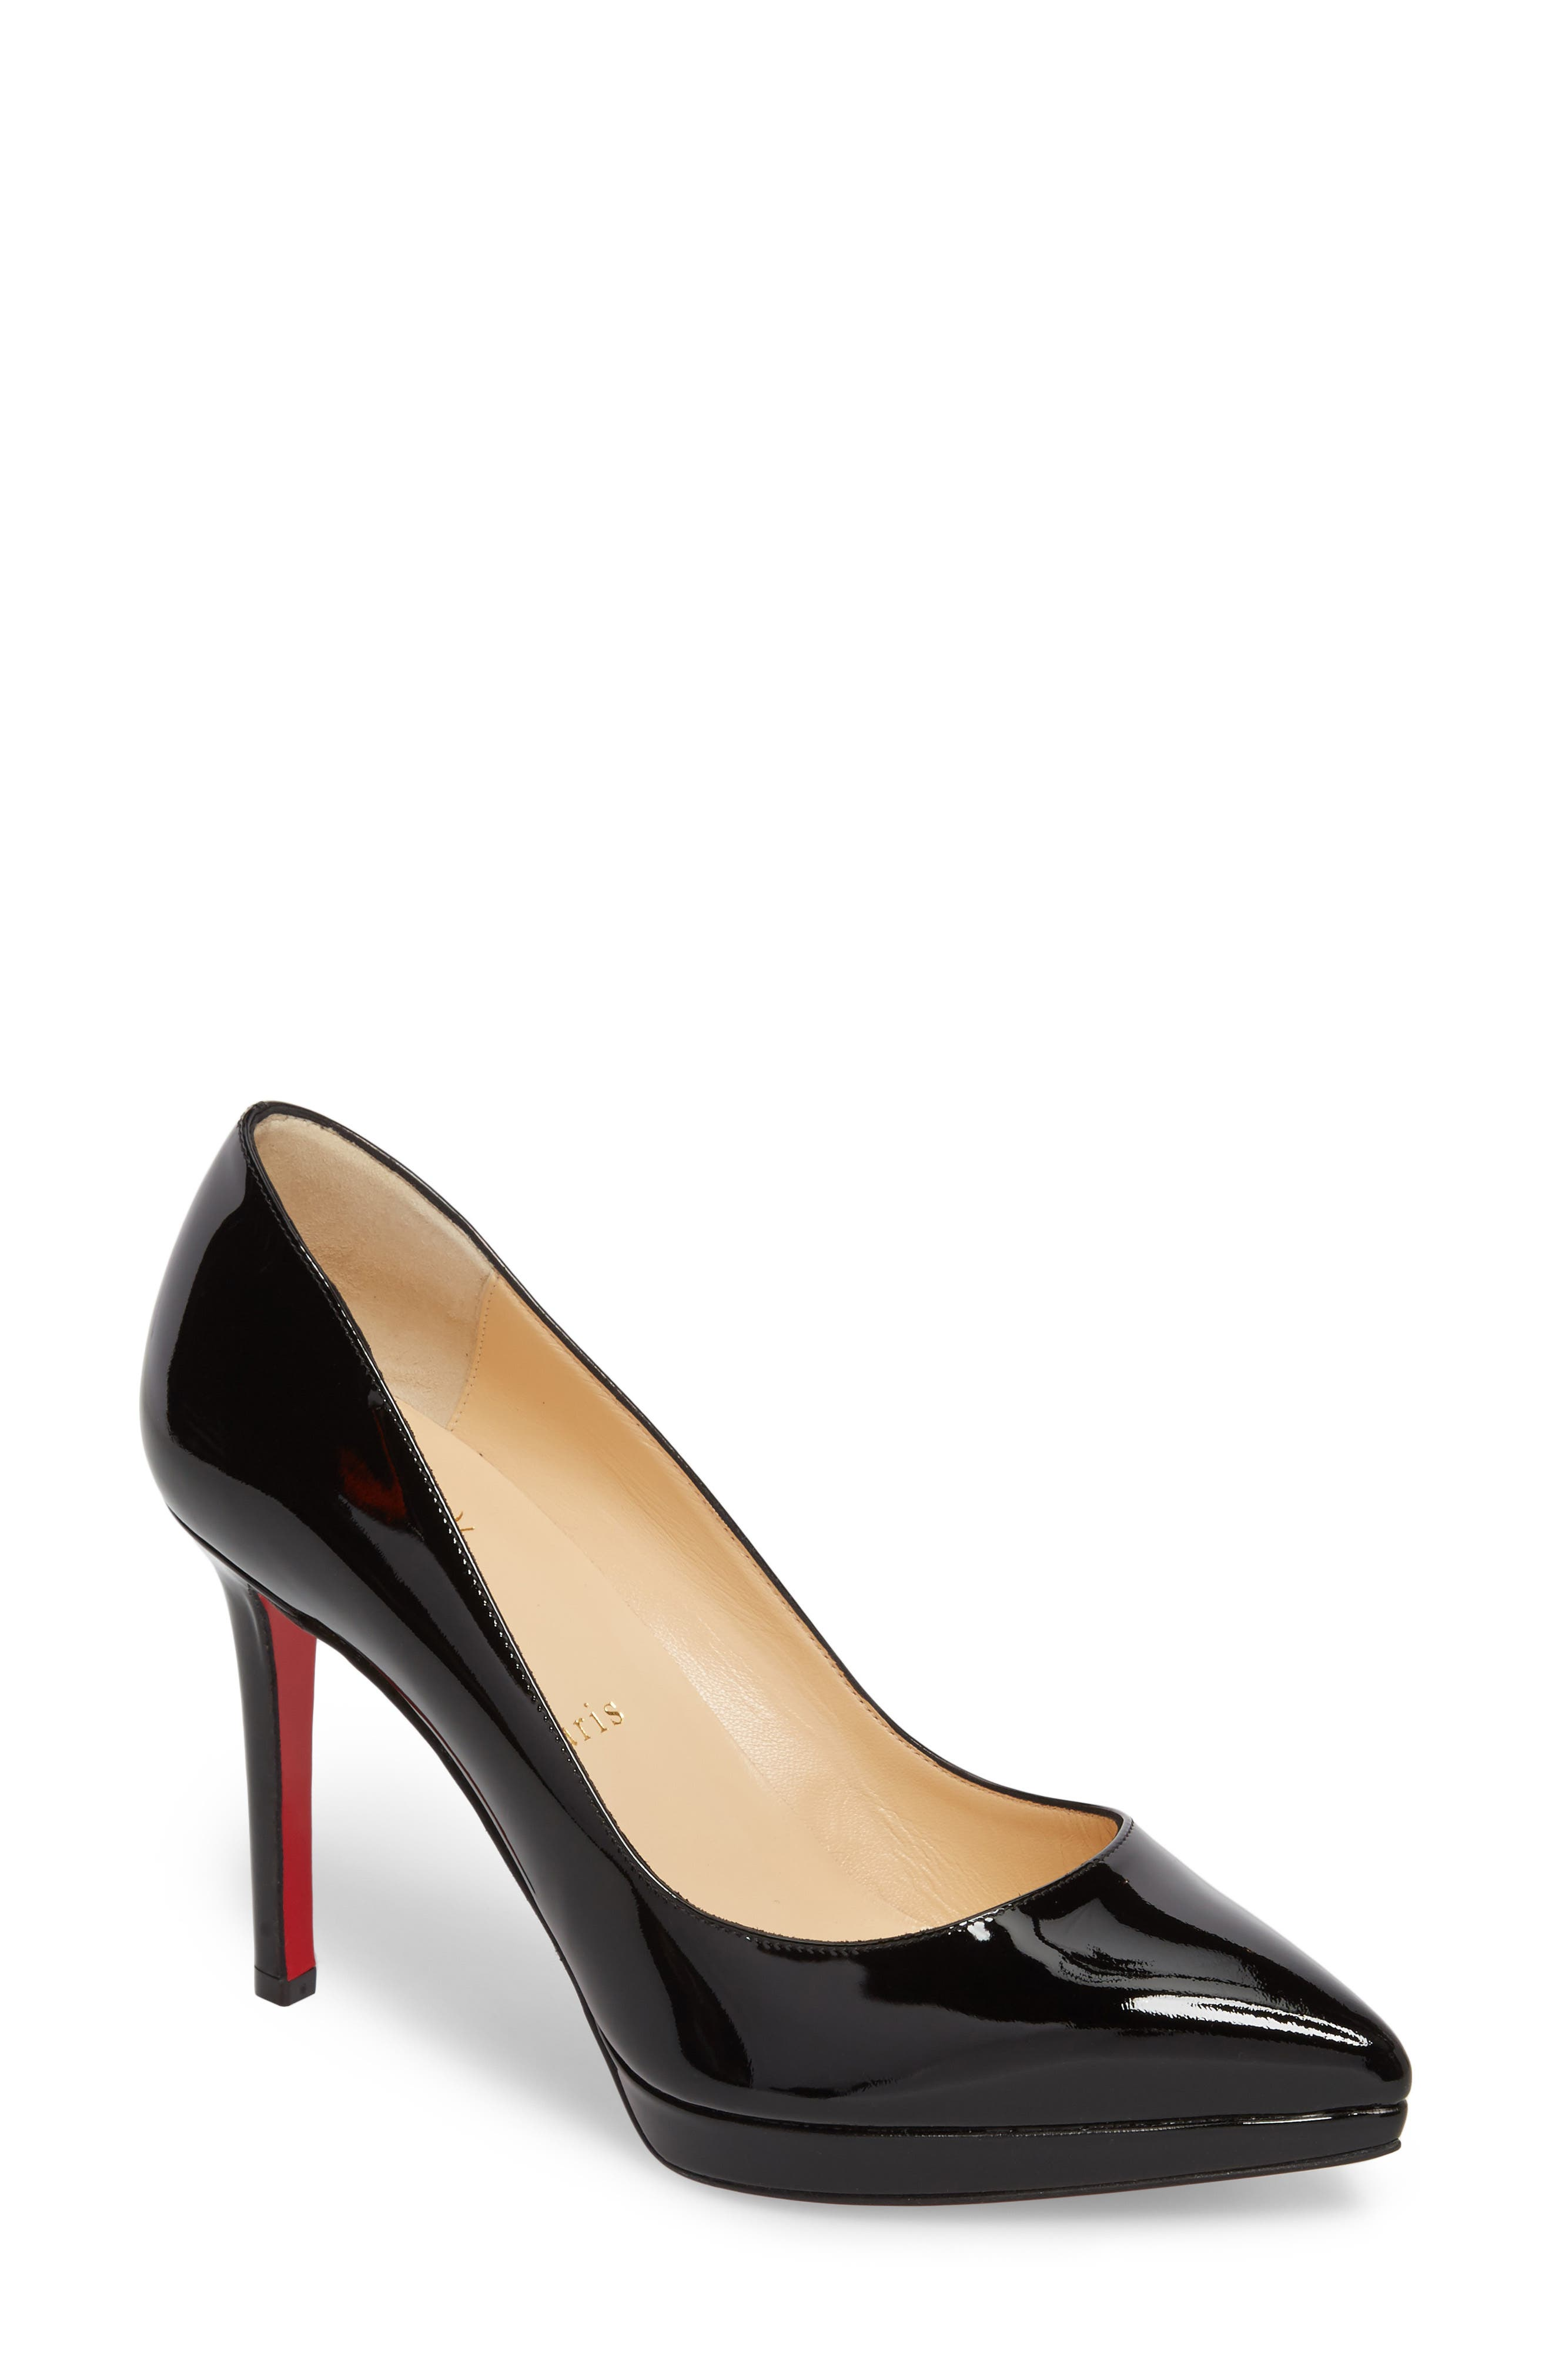 CHRISTIAN LOUBOUTIN, Pigalle Plato Pointy Toe Platform Pump, Main thumbnail 1, color, BLACK PATENT